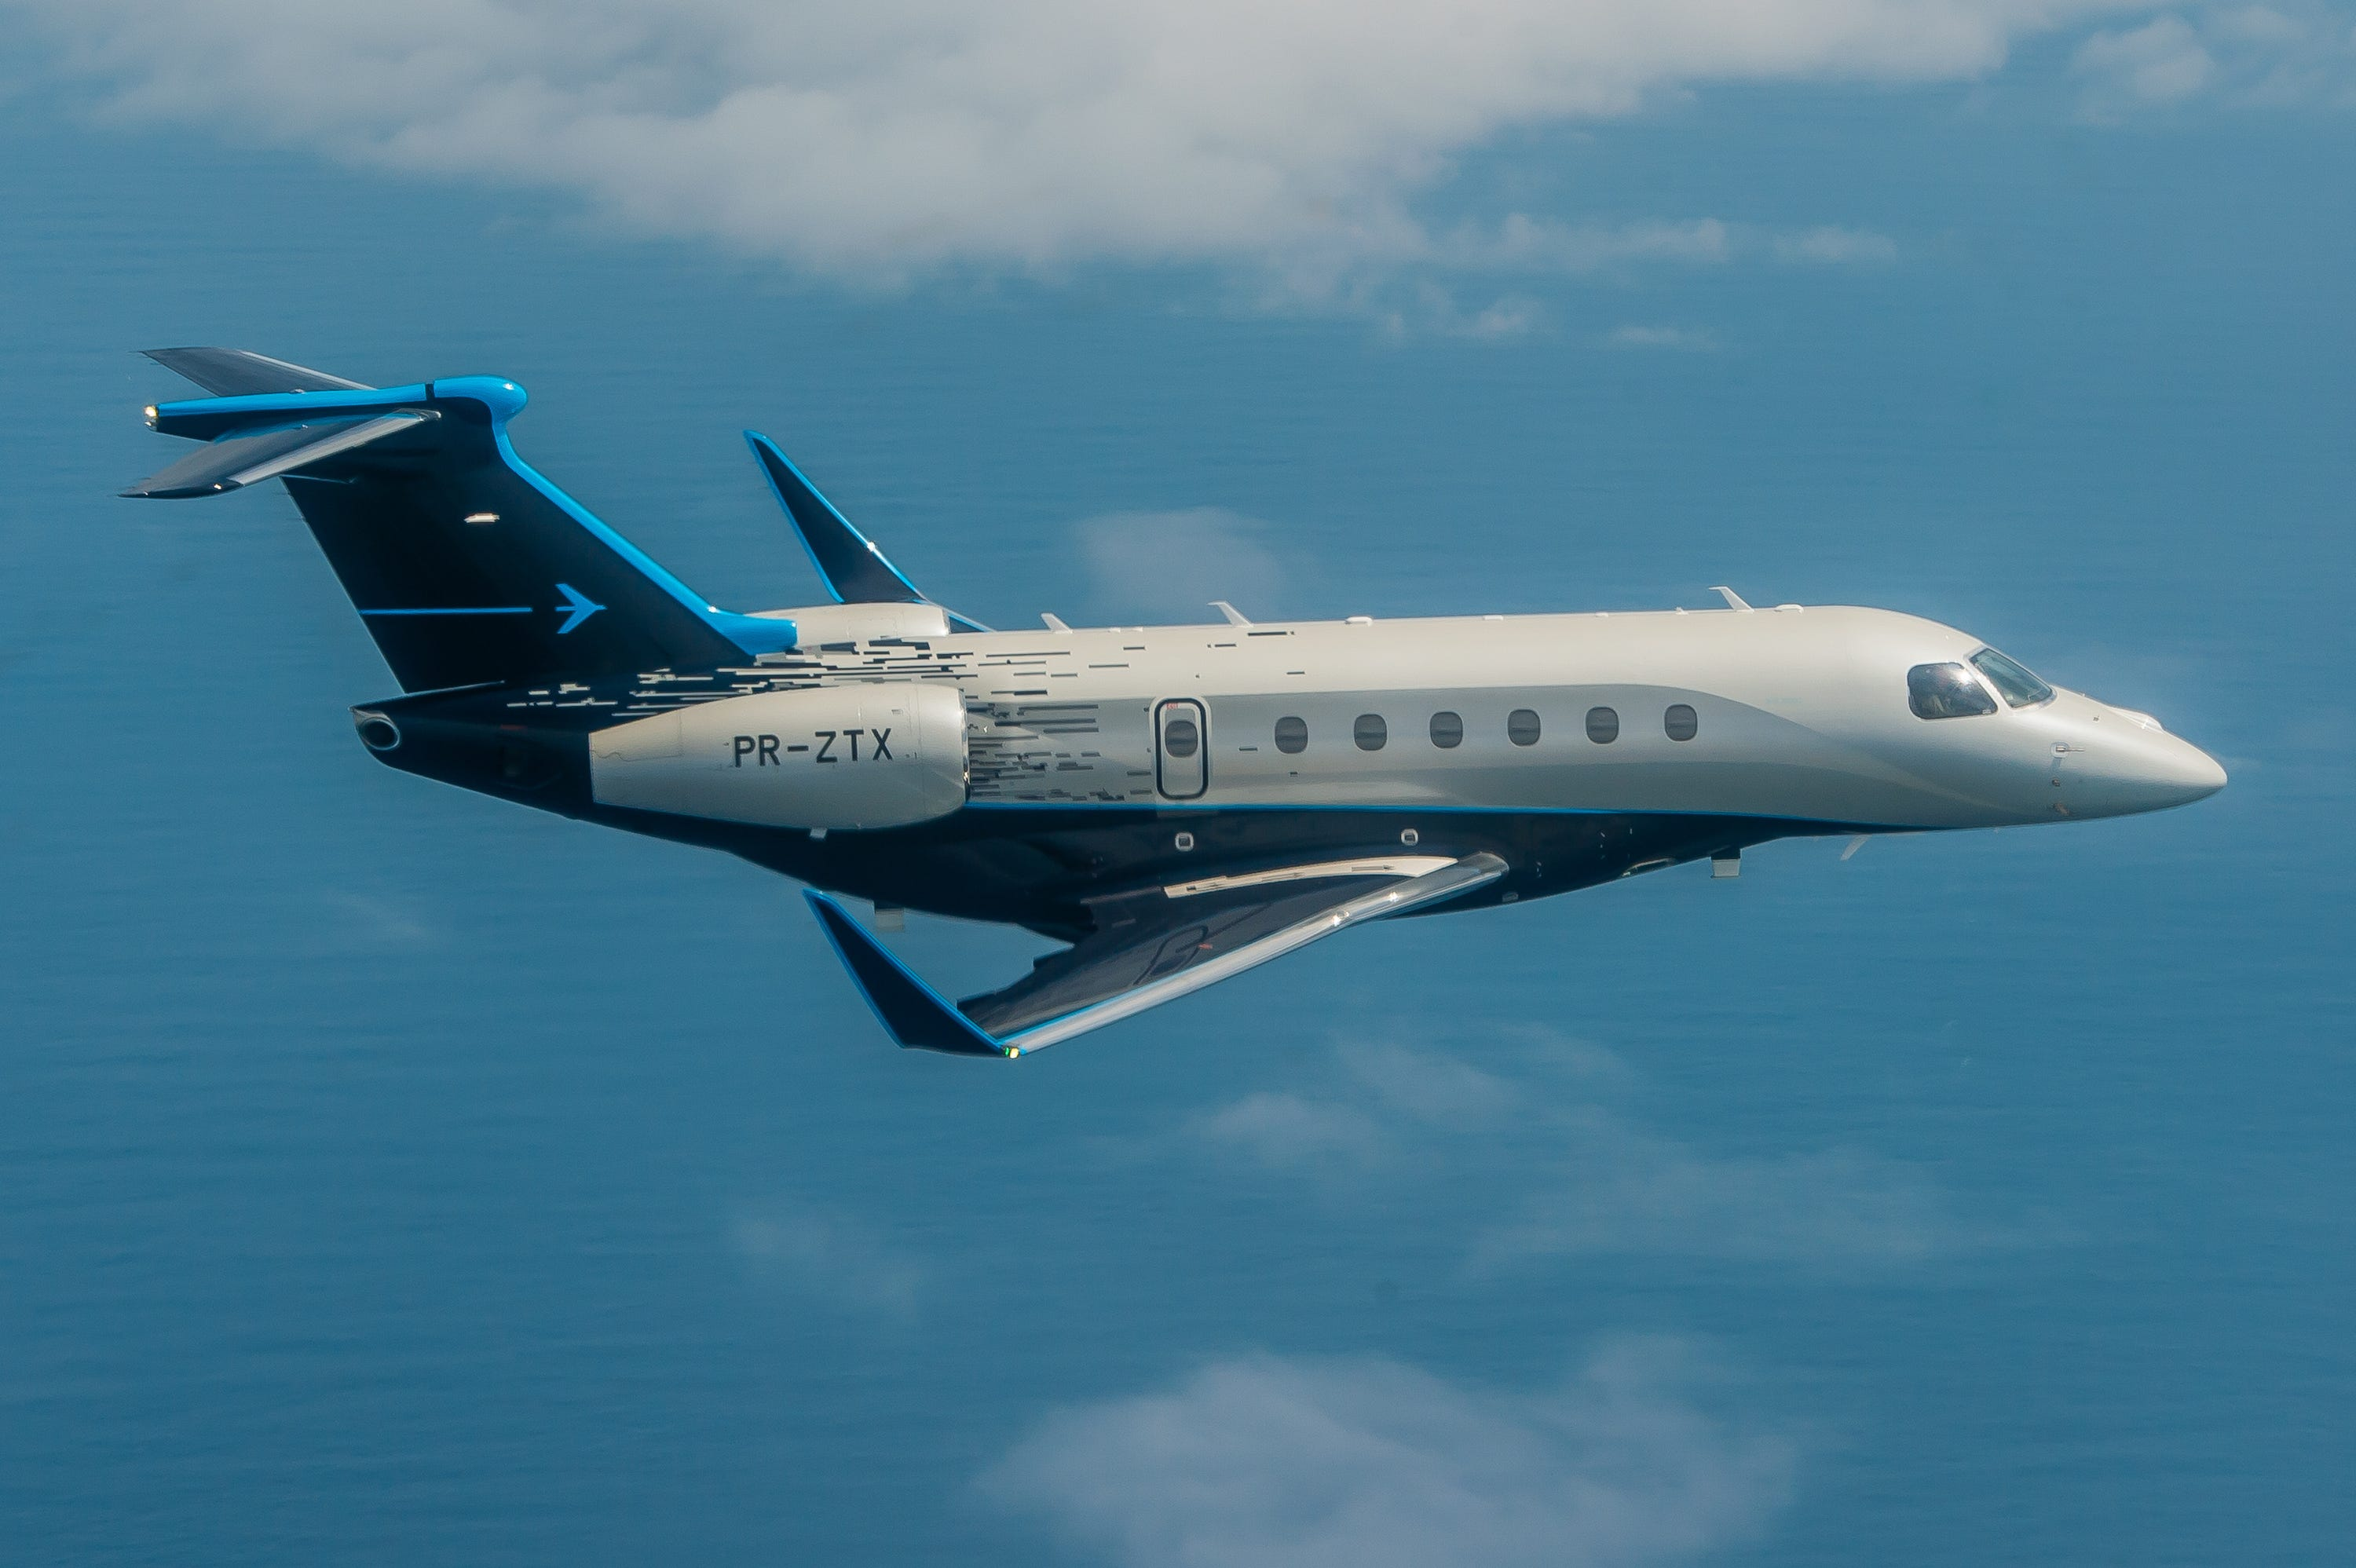 Gebraucht Jet Kaufen Embraer Praetor 500 And Praetor 600 Private Jets Unveiled At